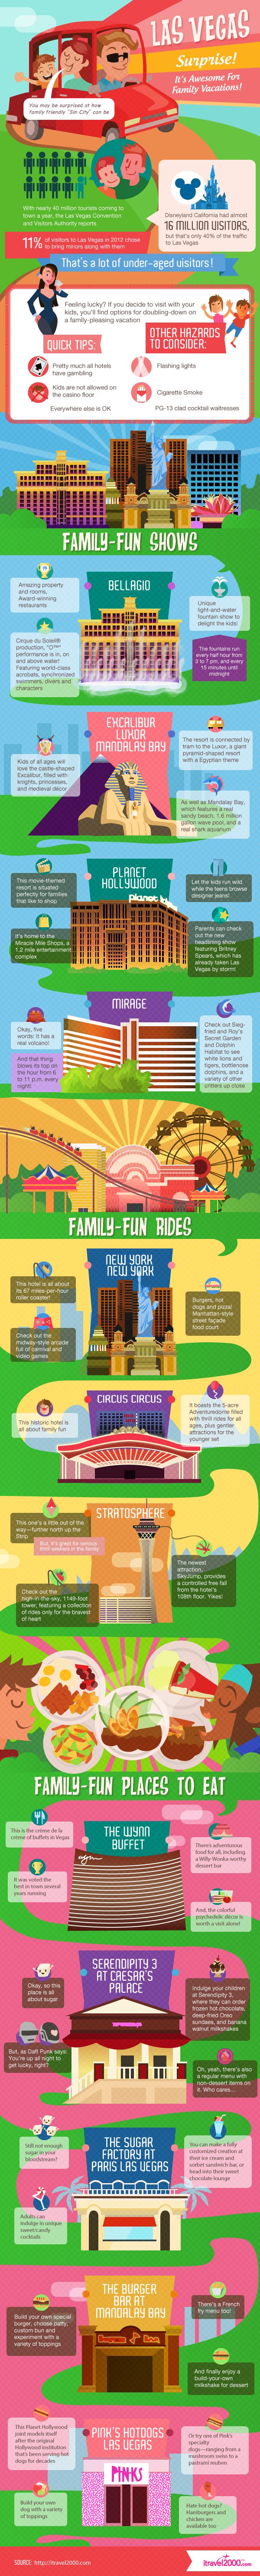 ❥ A cool infographic of all the things to do in #Vegas with kids including where to eat, play and stay!